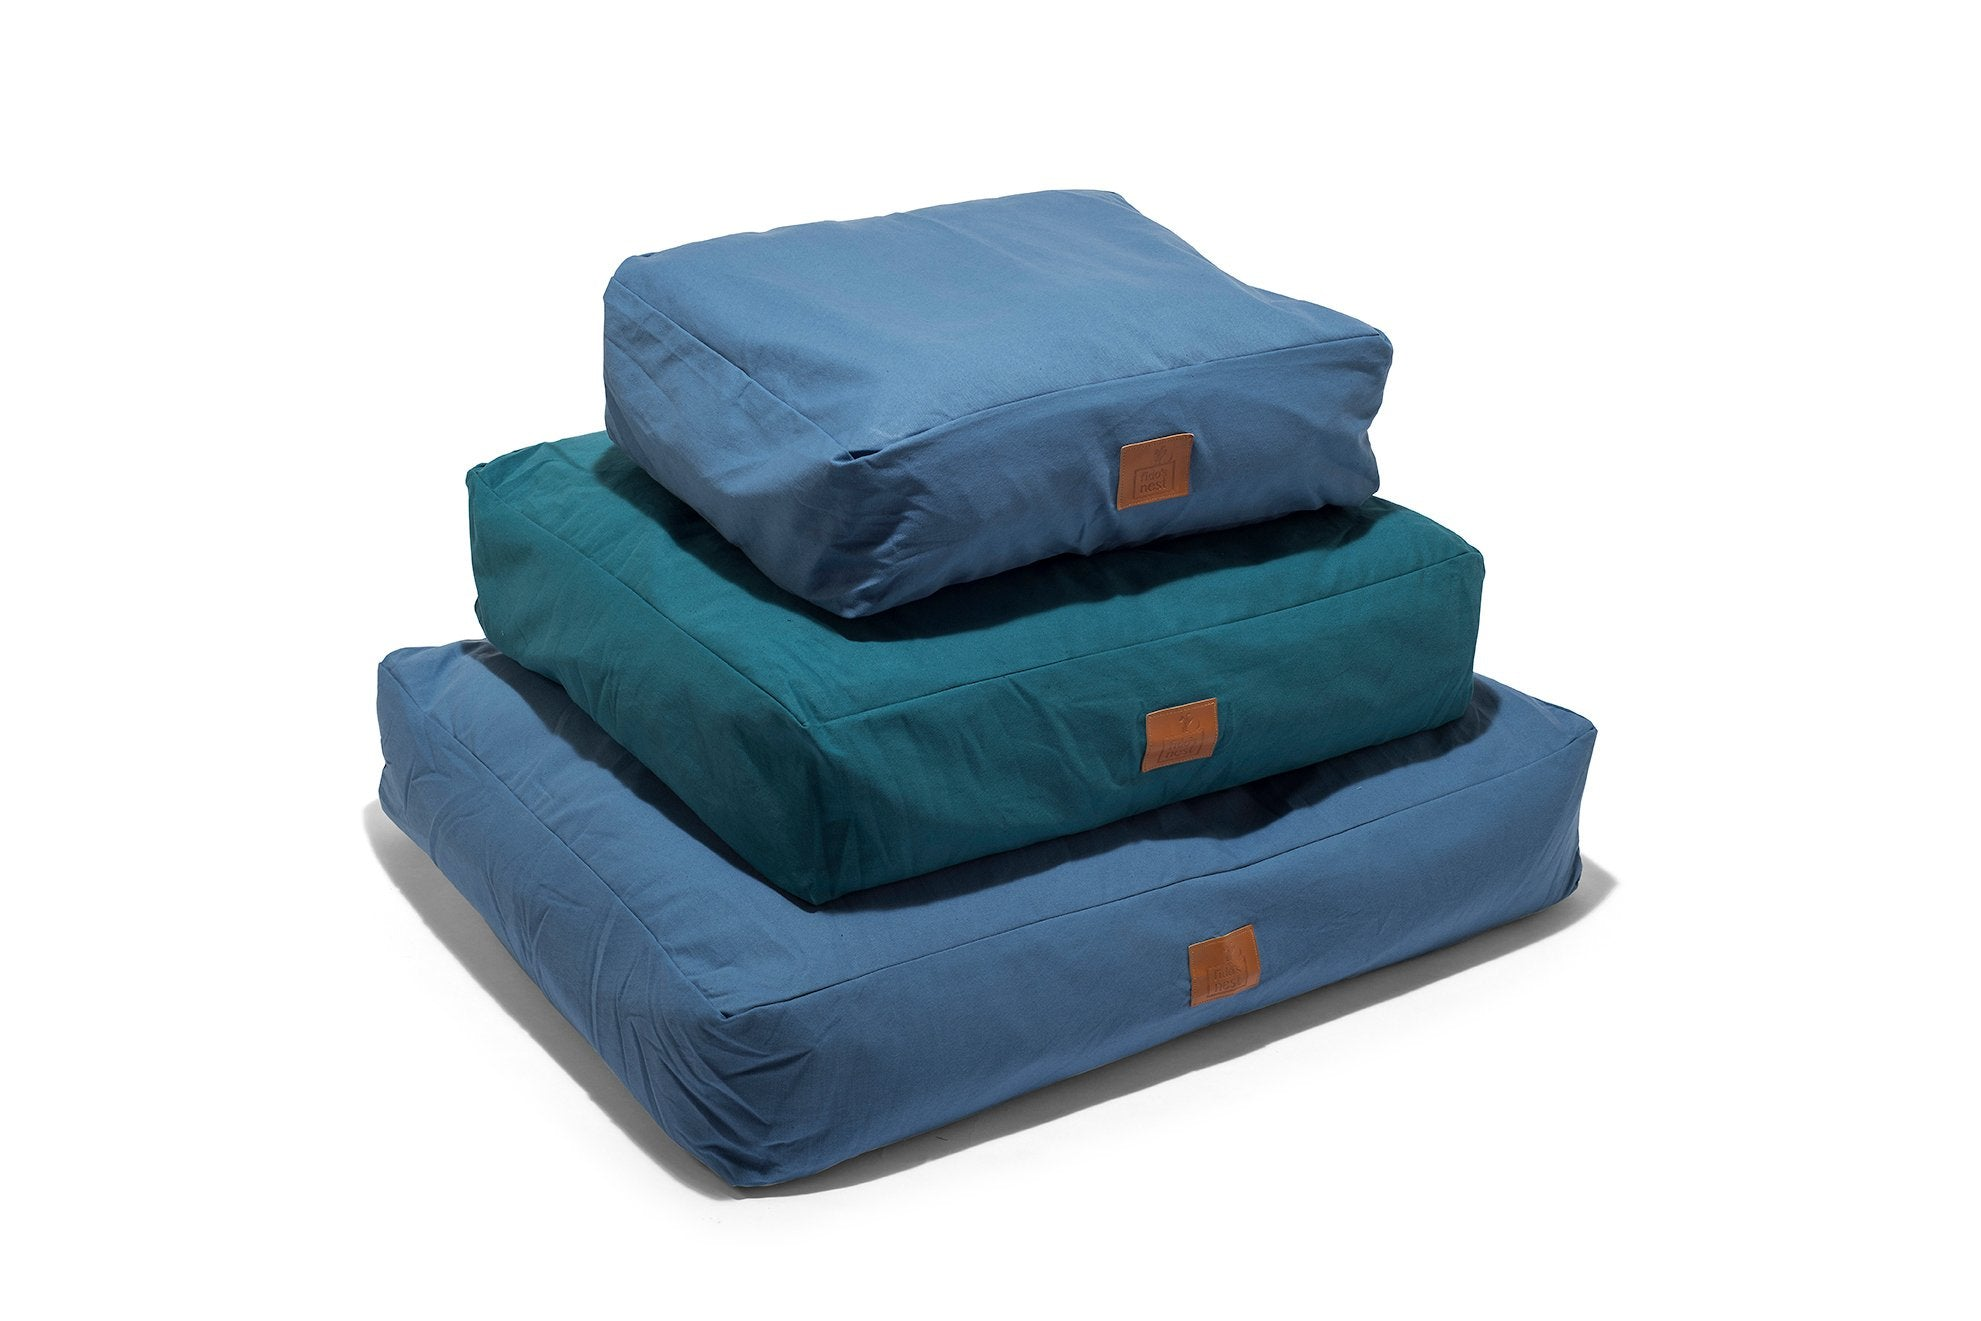 Fido's Nest | Luxury modern pillow dog bed. Eco-friendly, hypoallergenic, durable and machine washable. Choice of wool or hollow-fibre filling. In Periwinklr Blue.